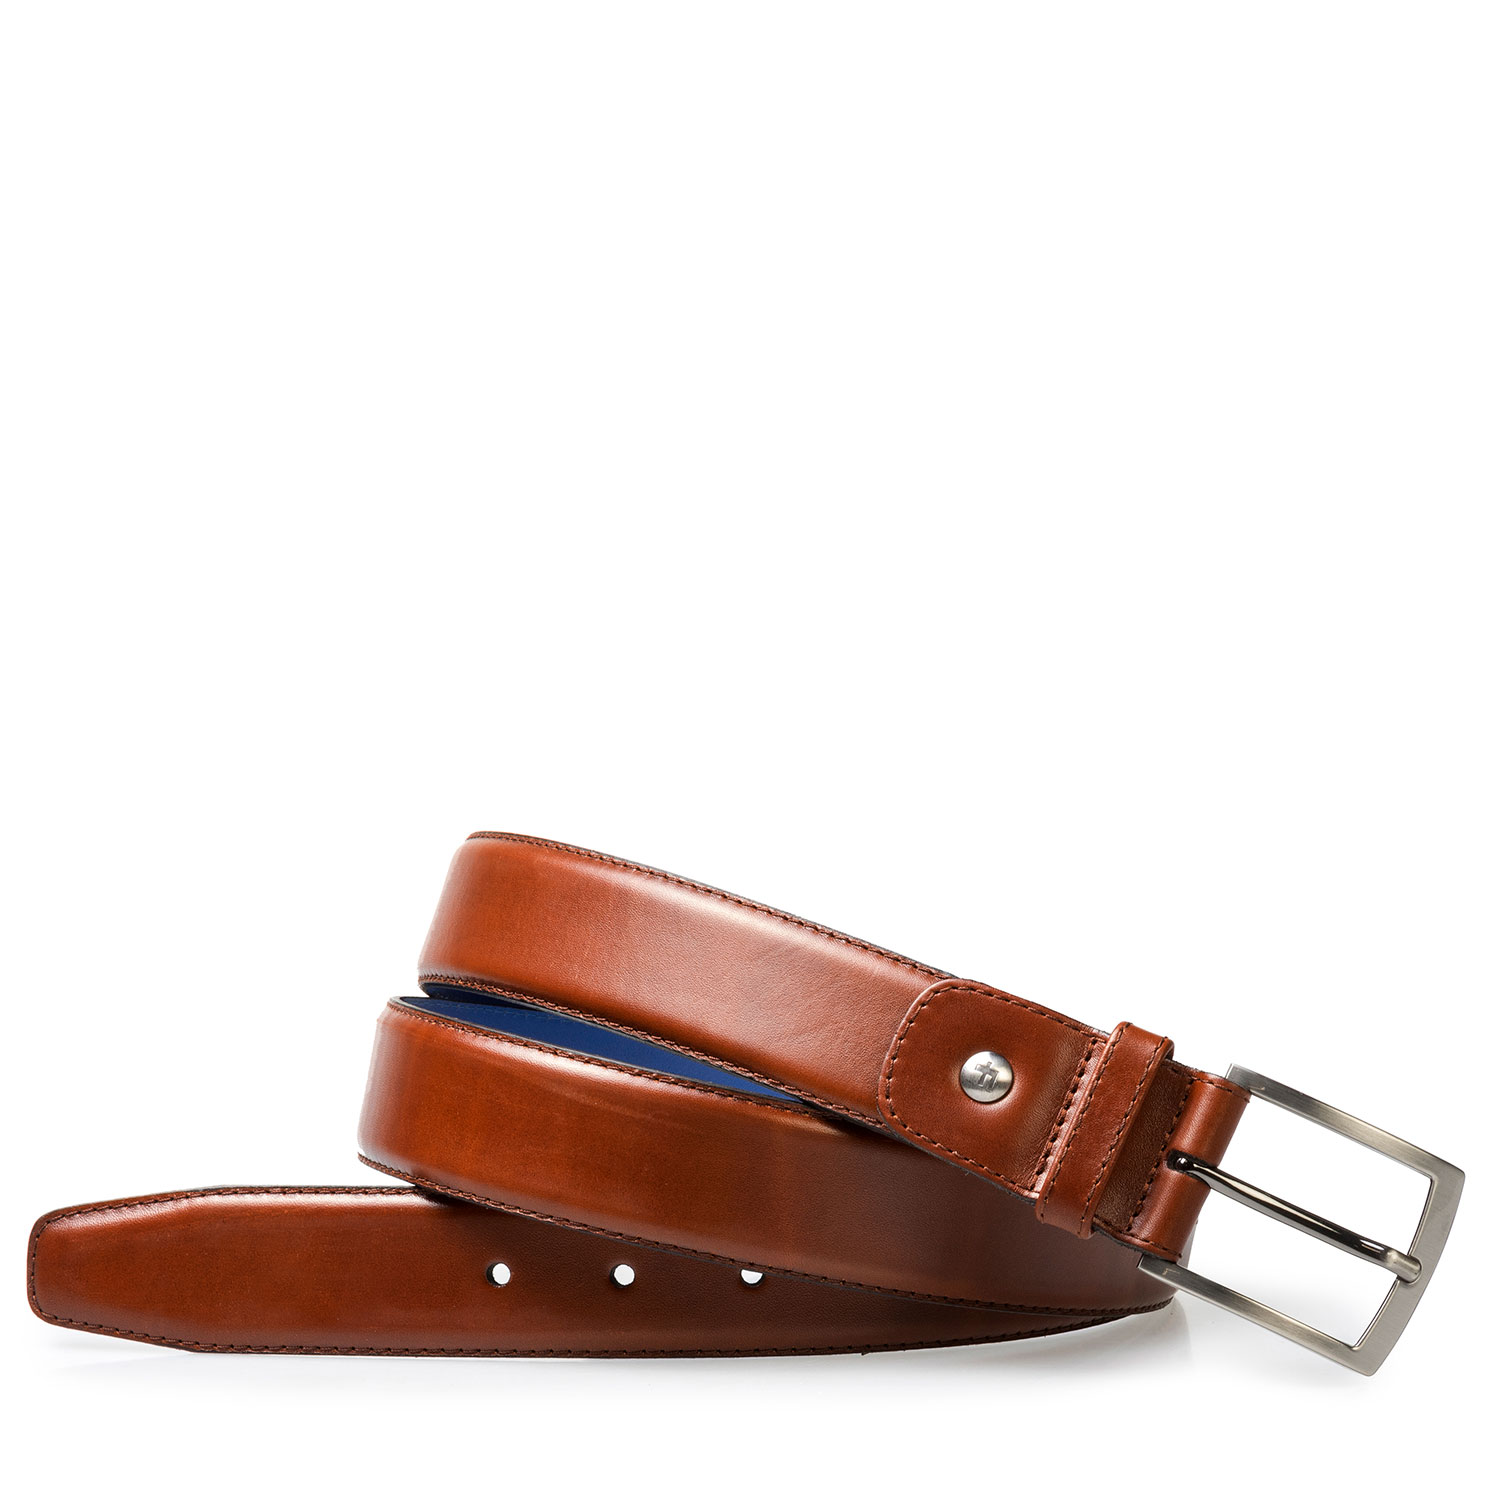 75144/07 - Dark cognac calf's leather belt